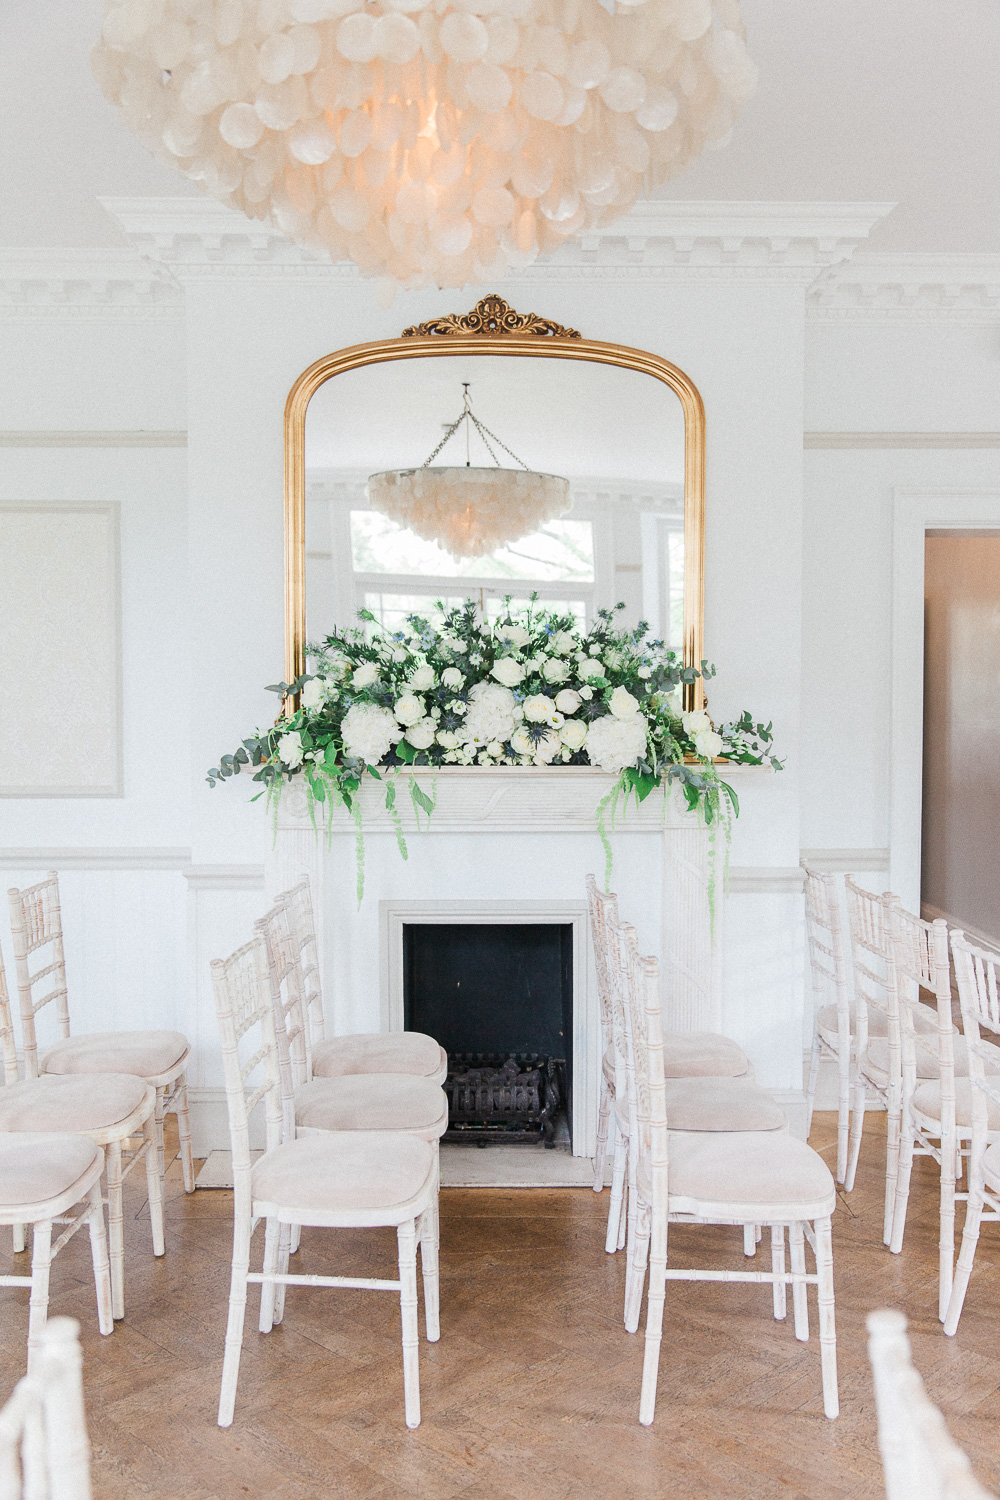 Decorated fireplace in the indoor ceremony room of Belair House wedding venue in London